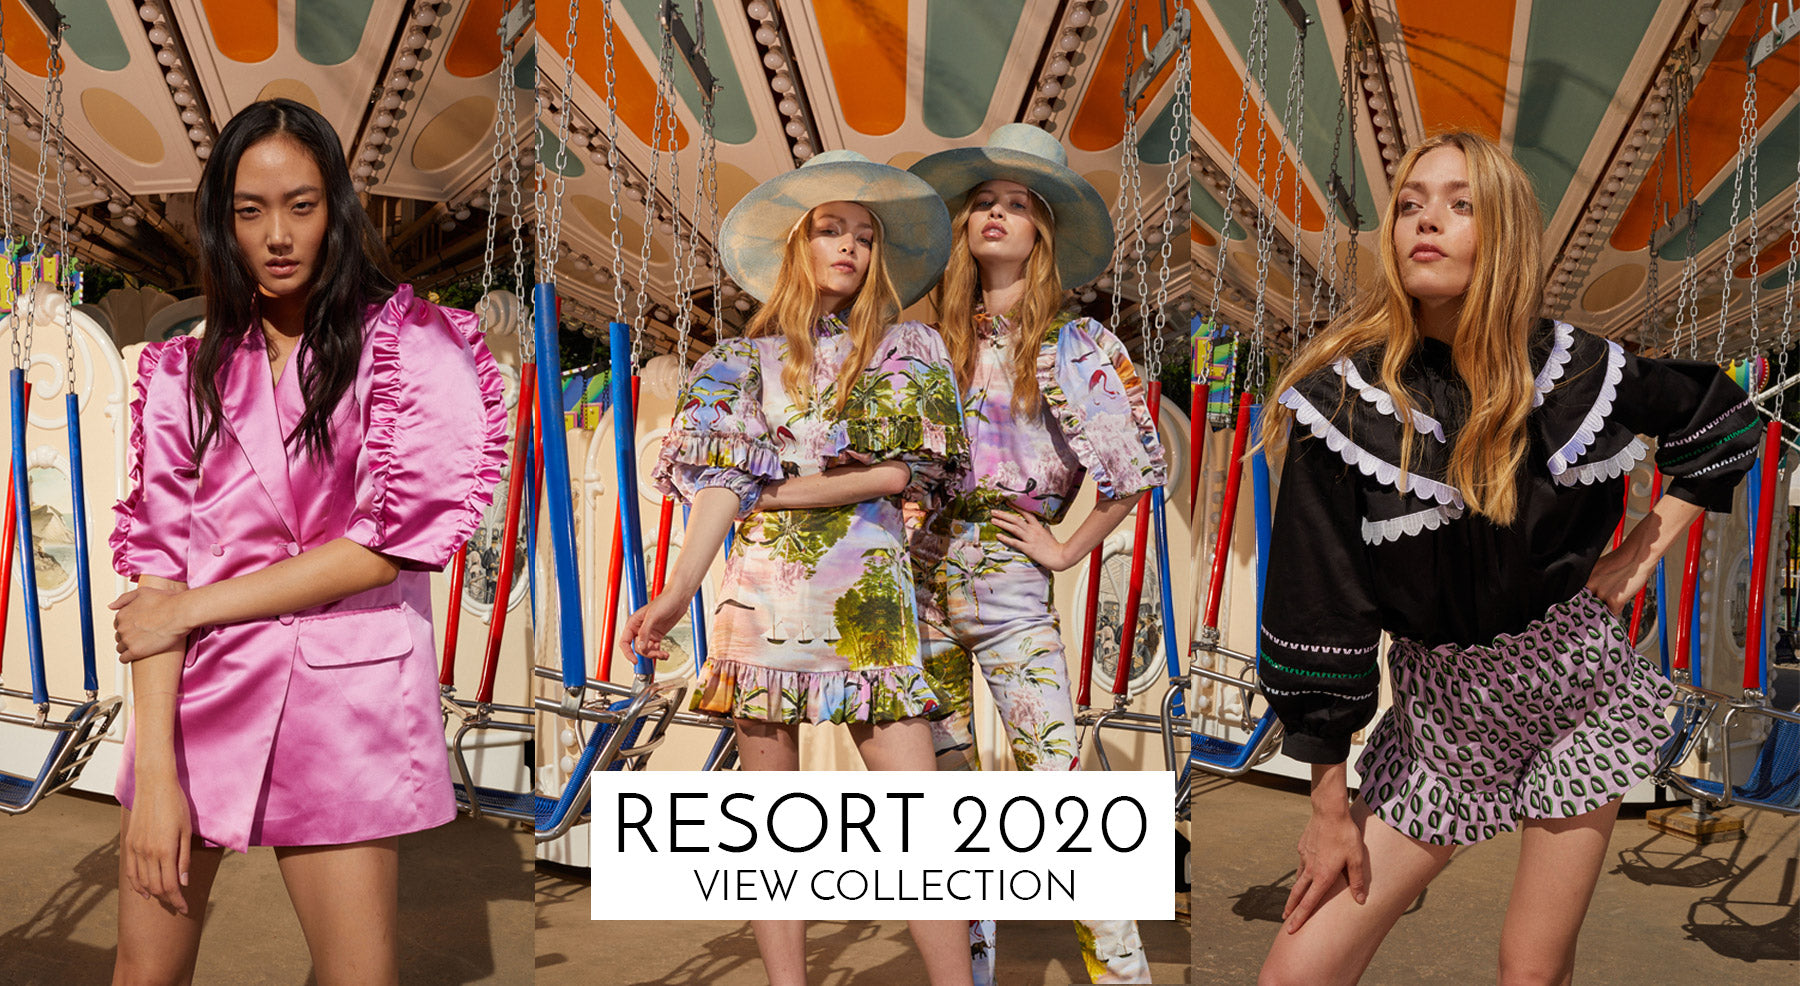 Resort 2020 Collection